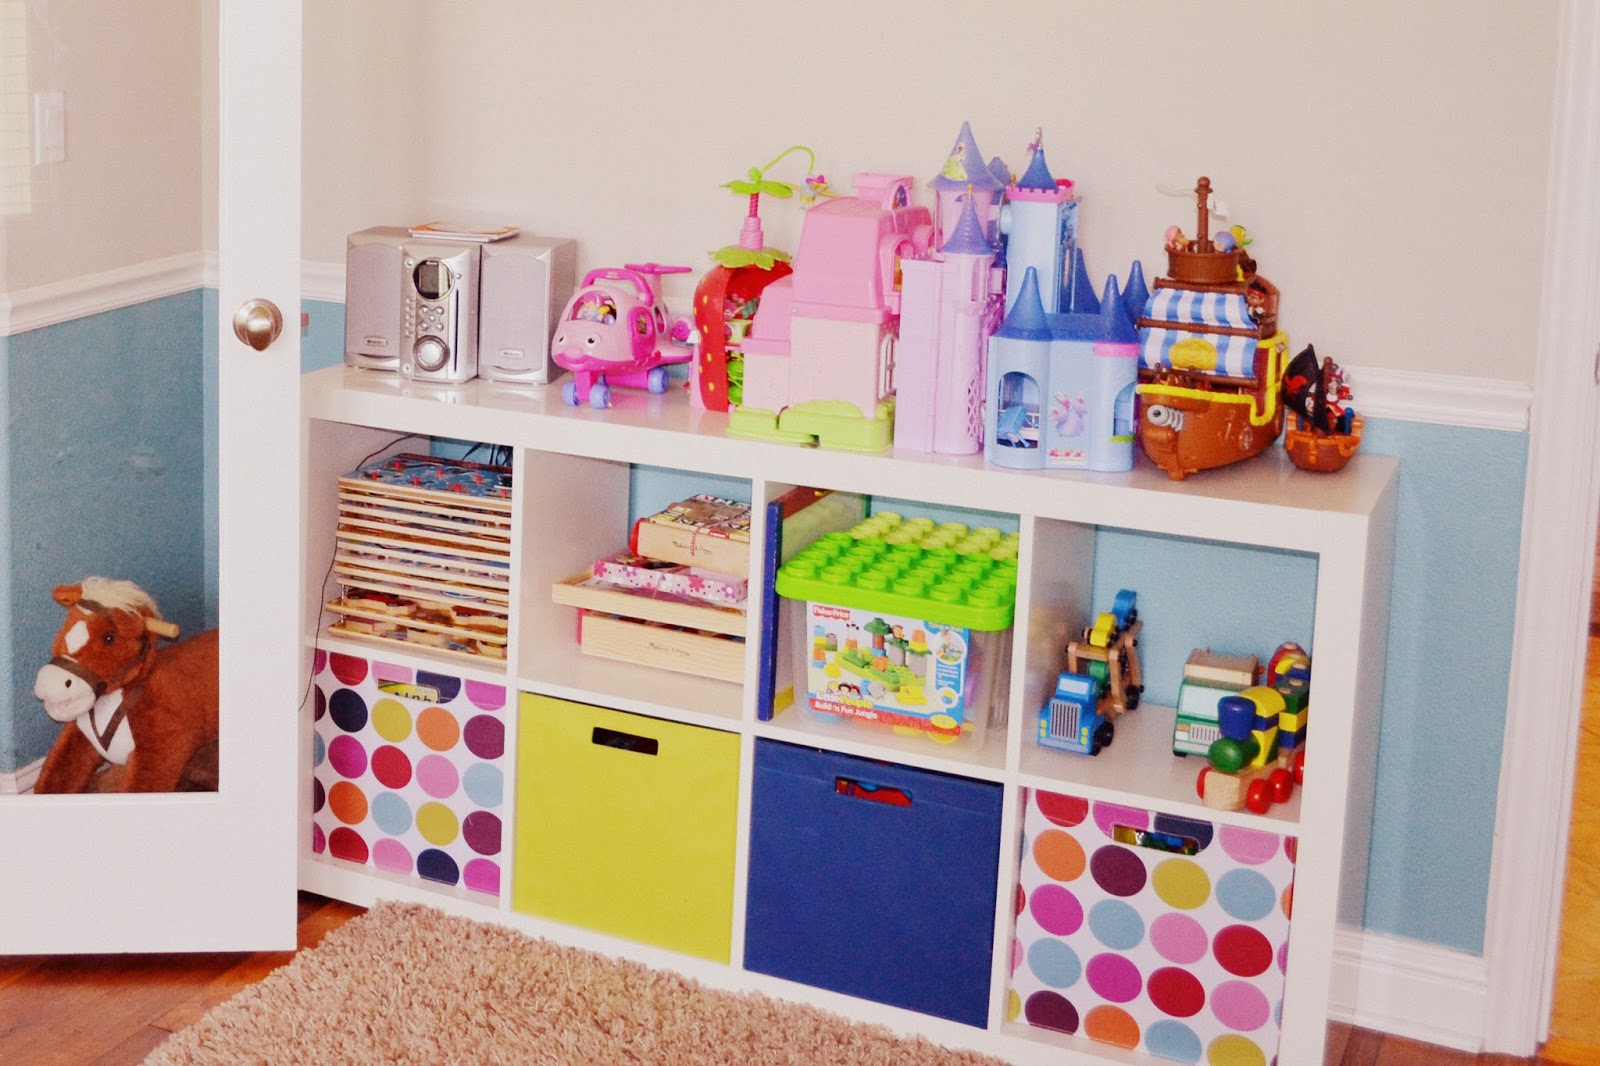 Awesome Free Playroom Ideas Ikea Plan To Happy Toy Storage For The Playroom Means  Reduce With Toy Organizer Ideas.